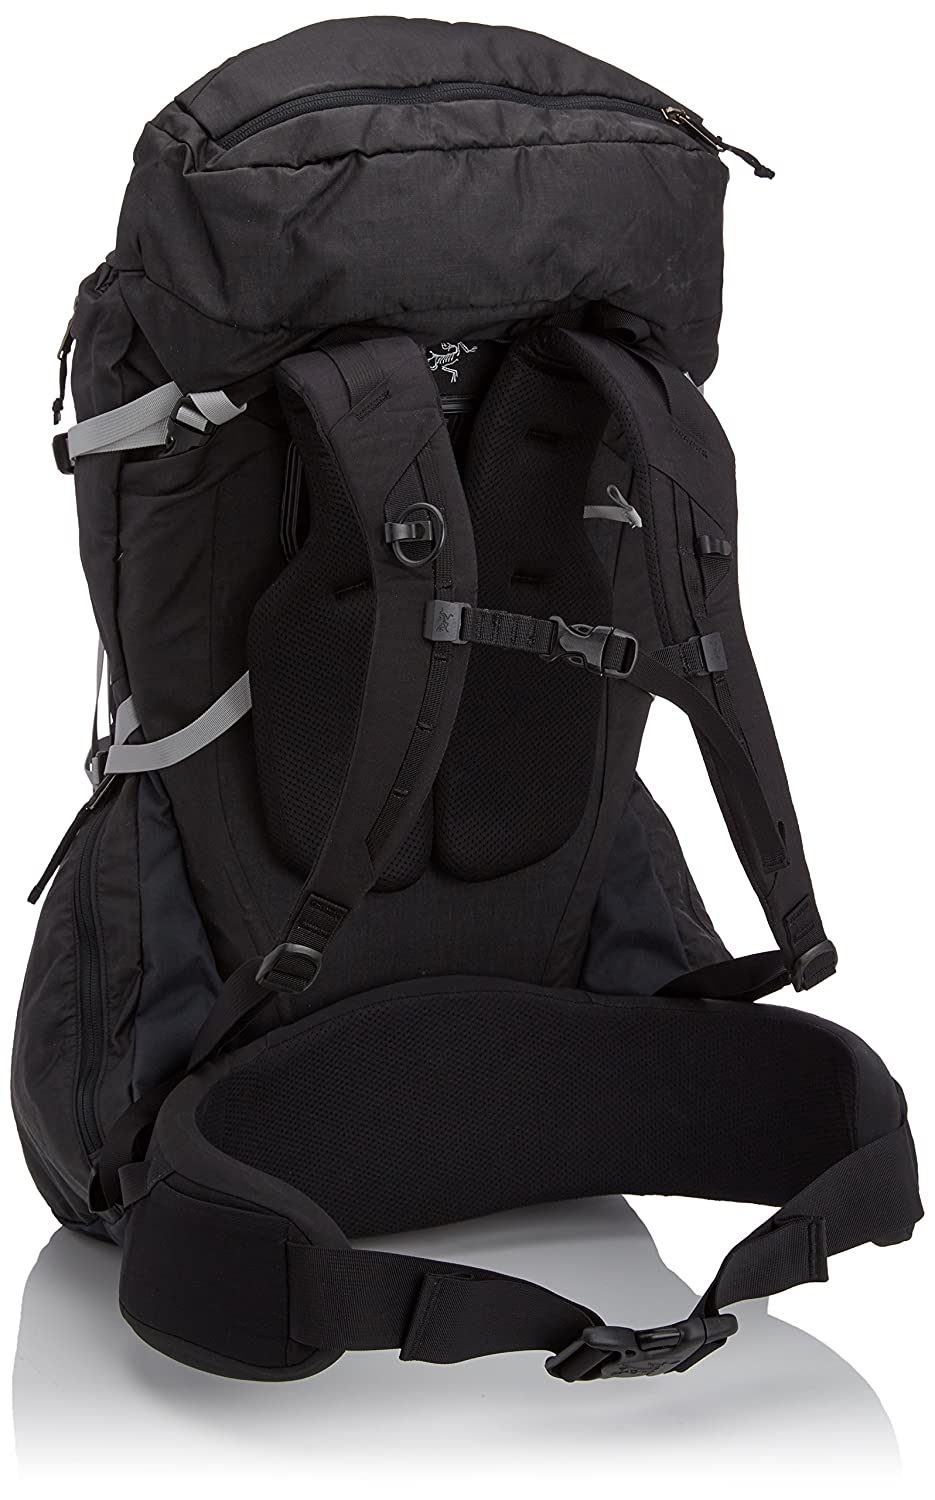 f26e42196f7 Amazon.com: Arc'teryx Men's Altra 65 LT Backpack Carbon Copy Backpack  Regular/Tall: Sports & Outdoors